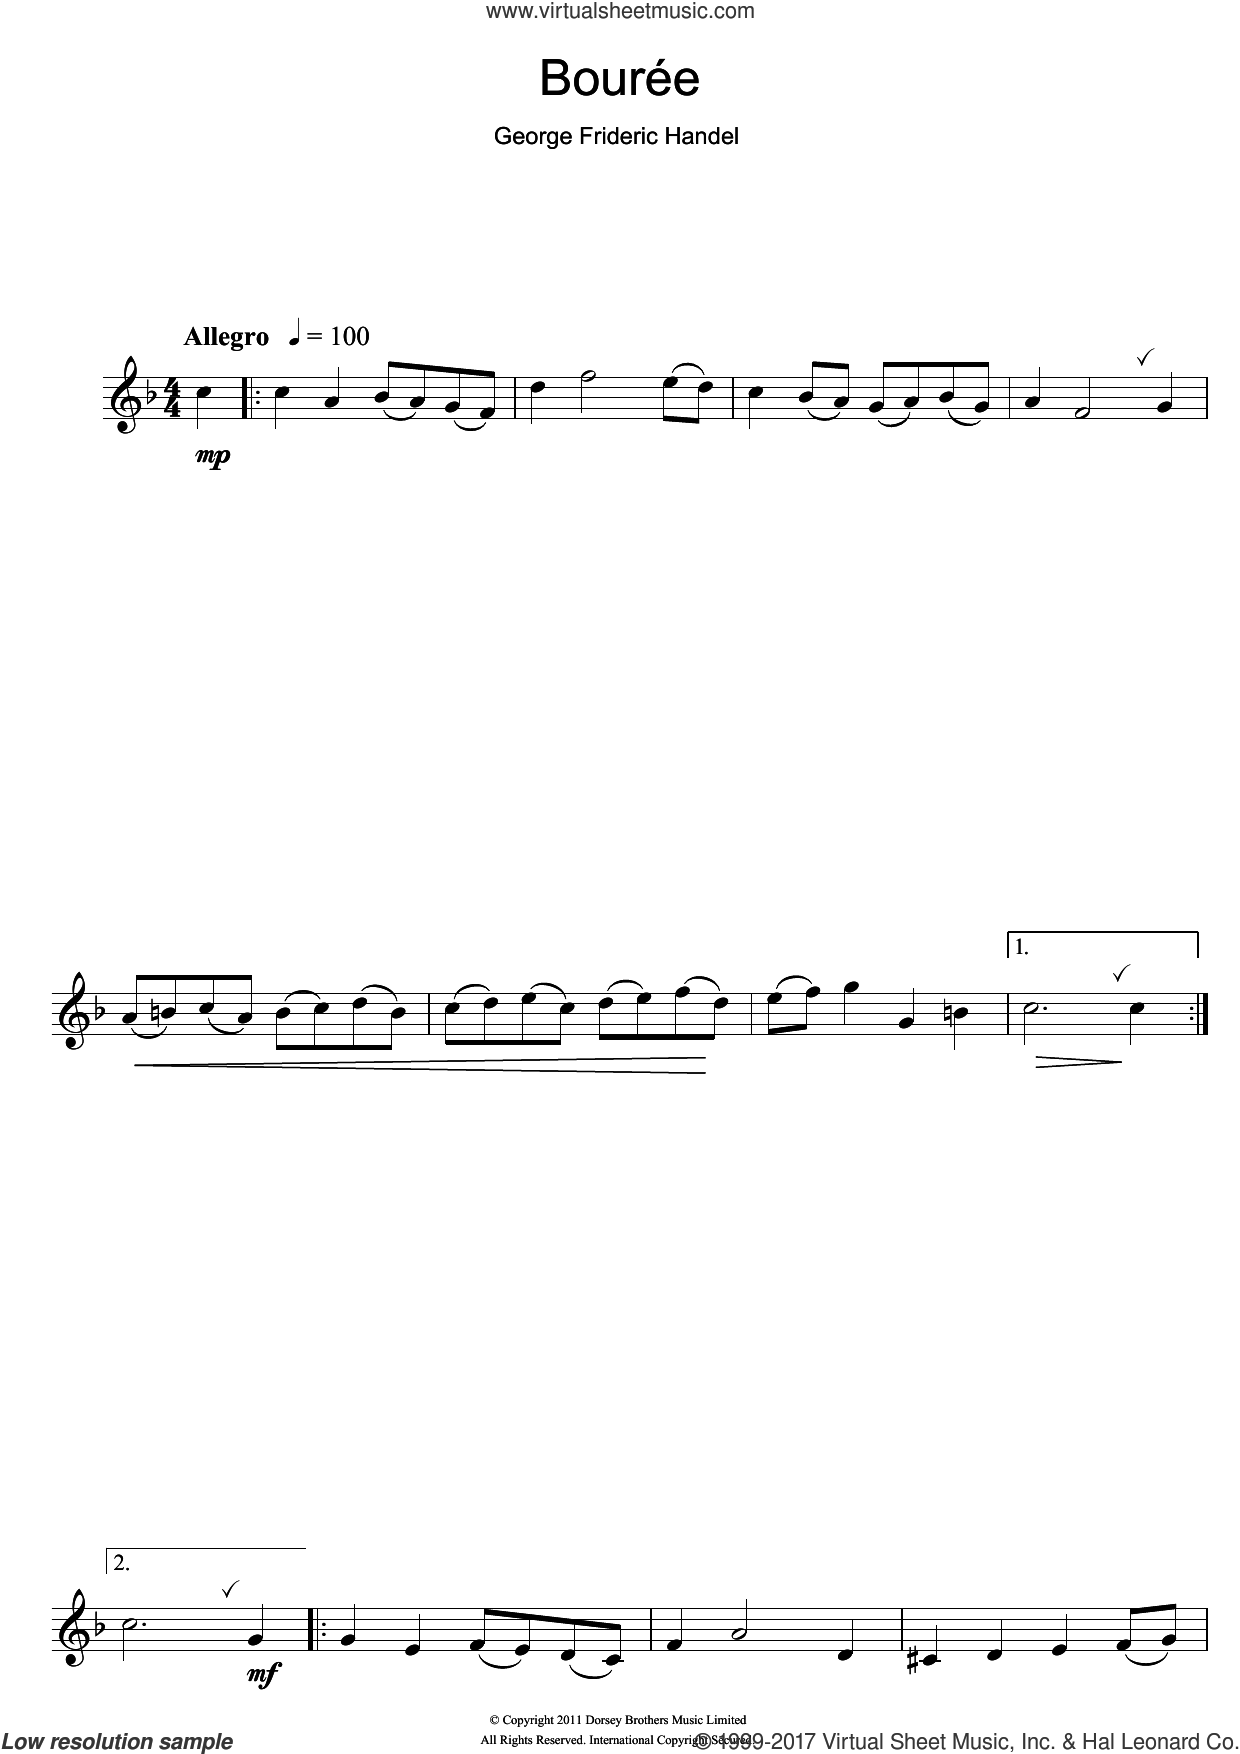 Bouree In G Major sheet music for clarinet solo by George Frideric Handel, classical score, intermediate skill level